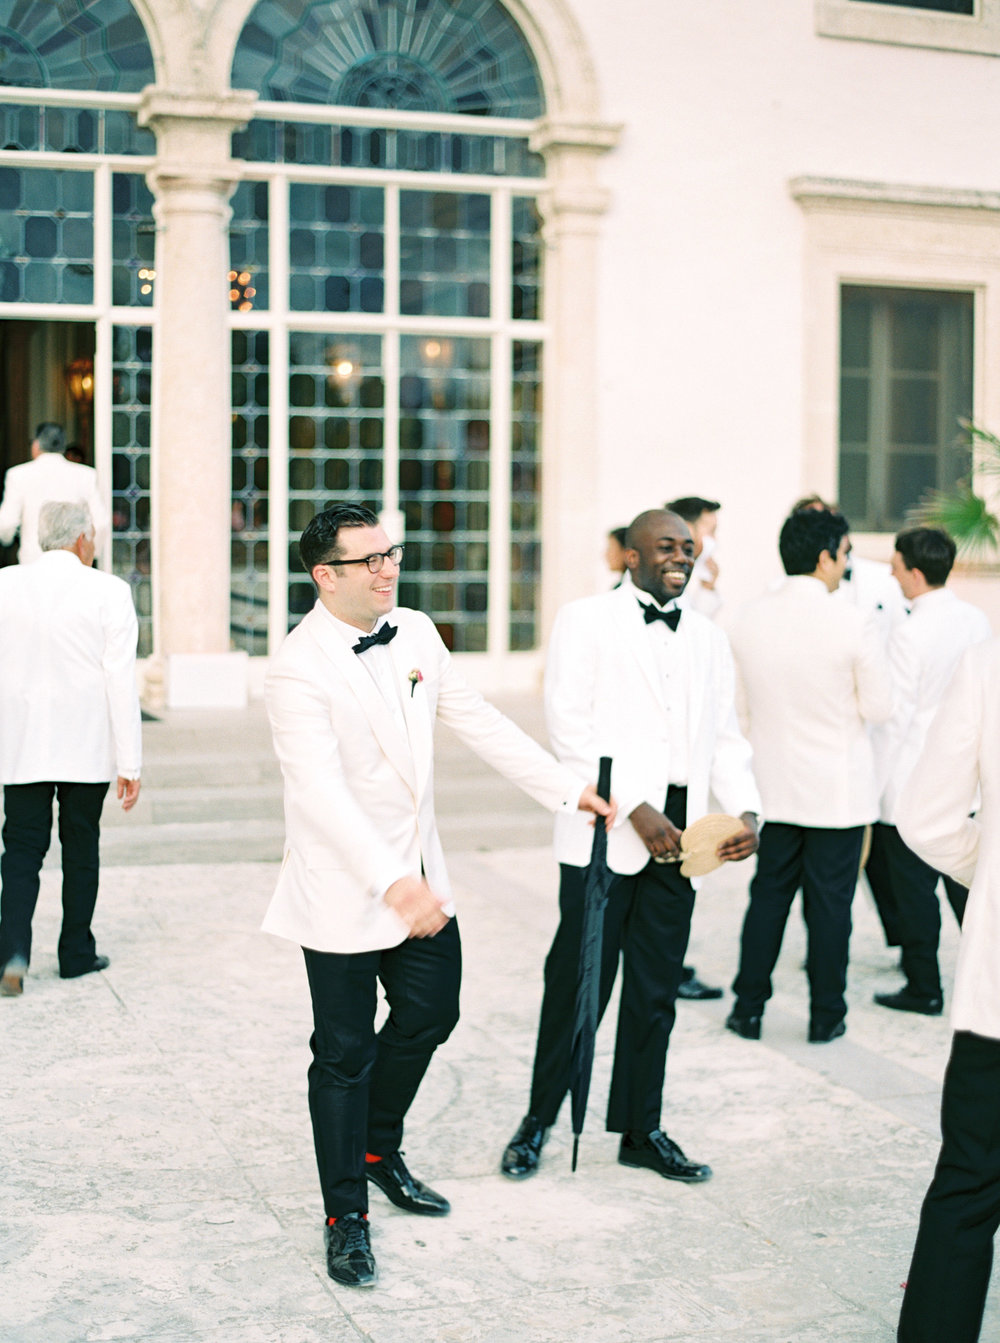 vizcaya-miami-destination-film-wedding-photographer-4444_05.jpg